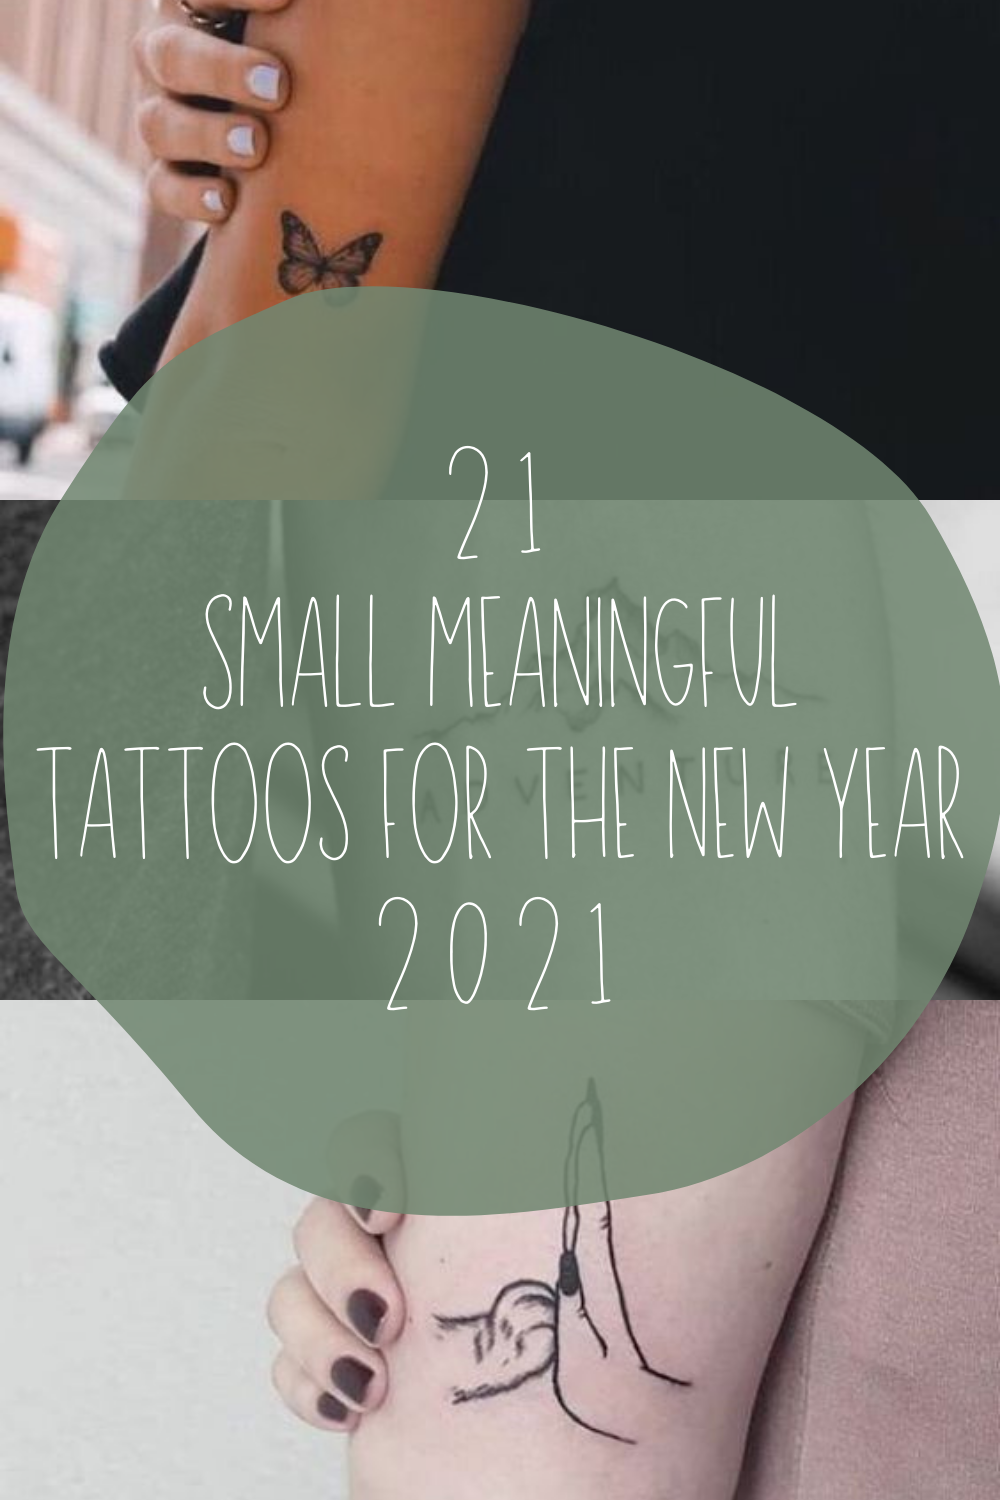 Small Meaningful Tattoos for the New Year